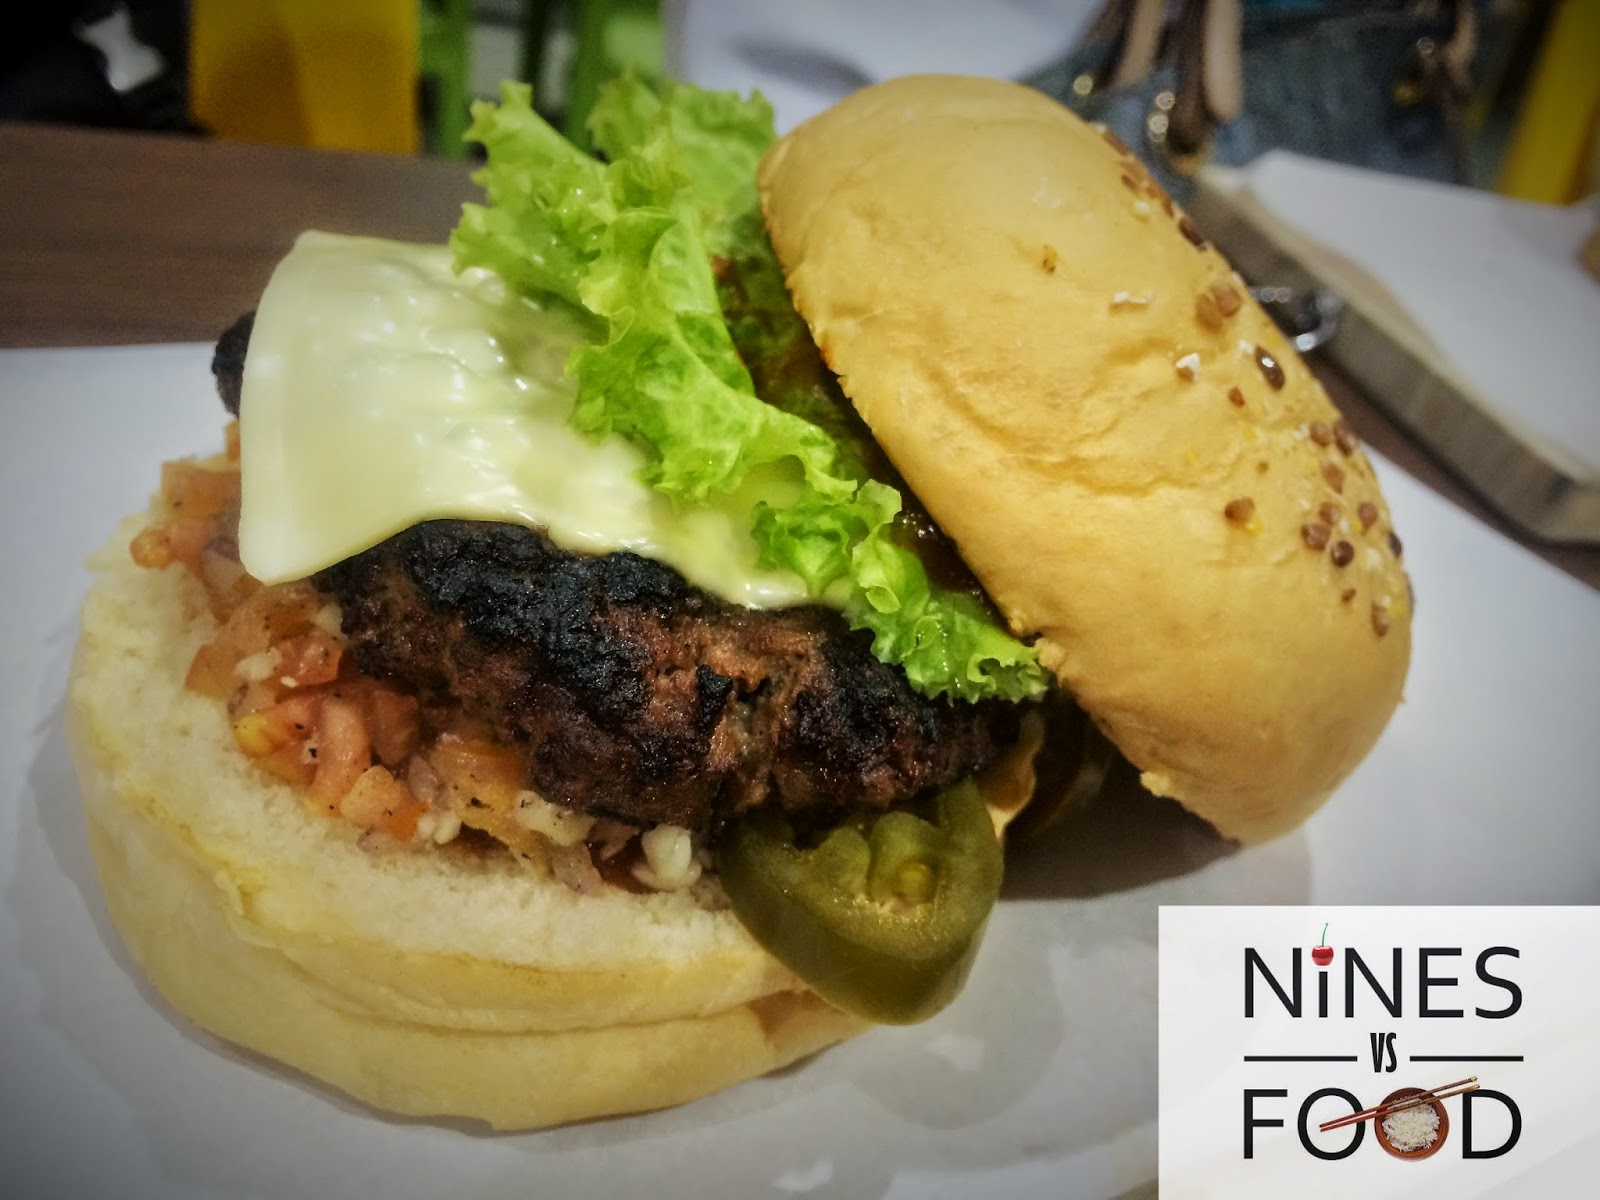 Nines vs Food - Wham! Burgers and Sausages-12.jpg